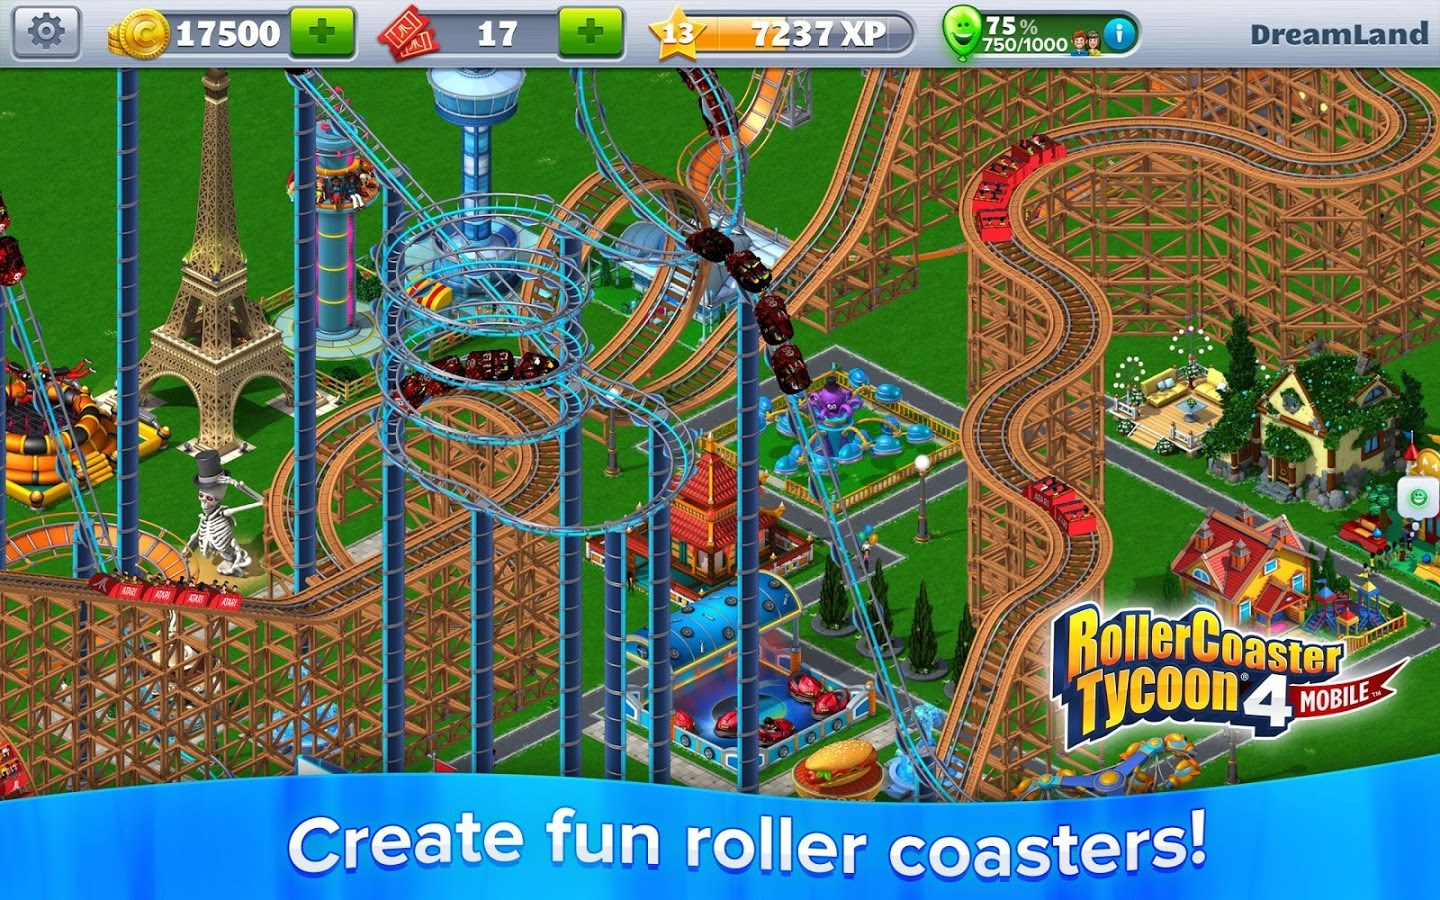 RollerCoaster Tycoon 4 Mobile - Imagem 2 do software